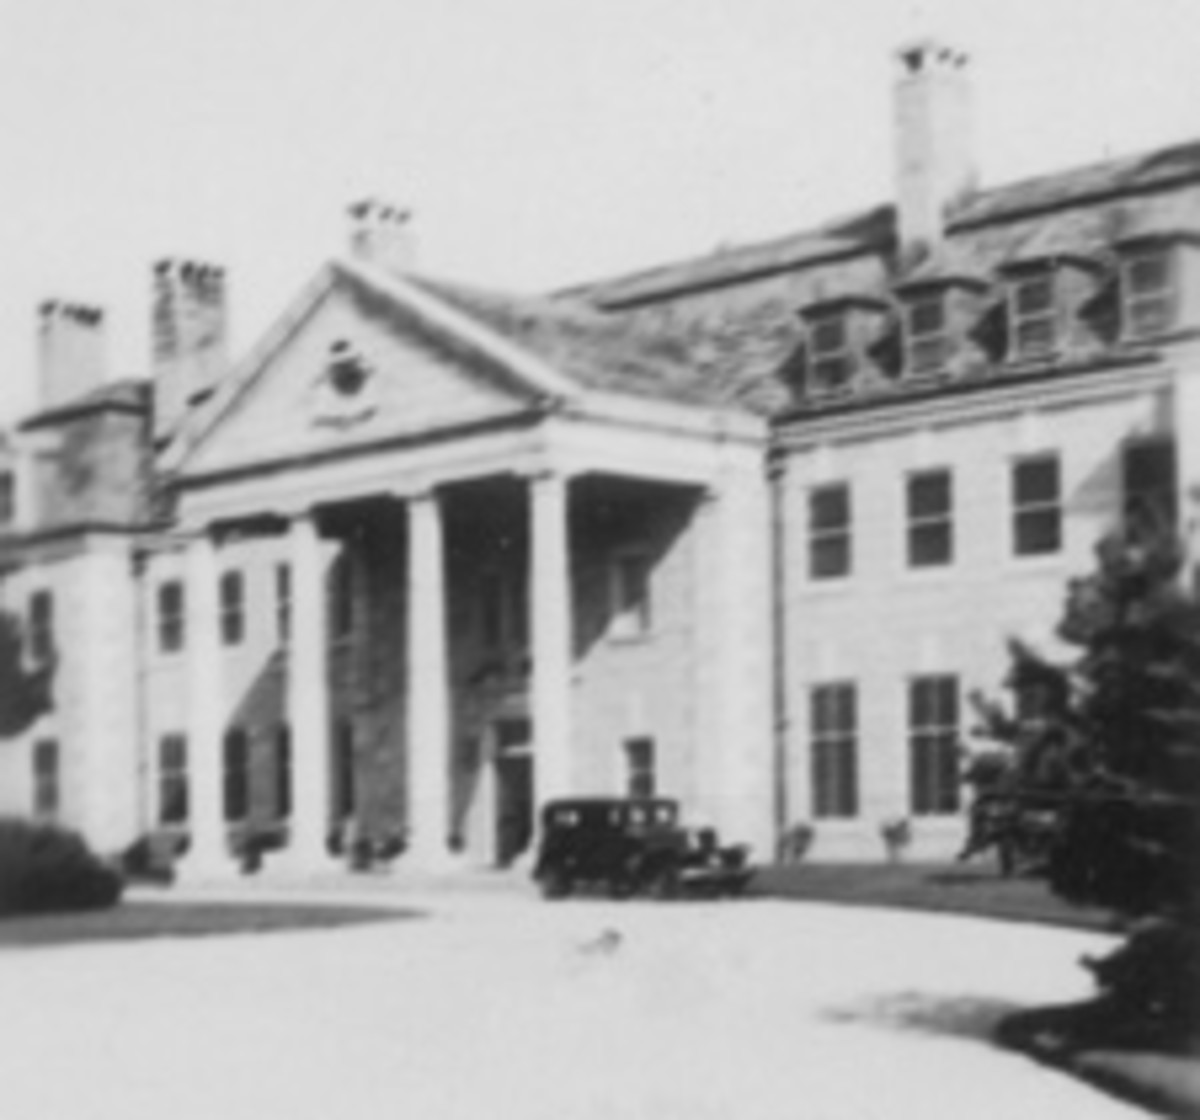 Entrance to Col. Green's mansion at Round Hill, South Dartmouth, Mass., complete with a Hupmobile parked in front. (Photo by my uncle John Klemann, Jr. Sept. 23, 1931.)